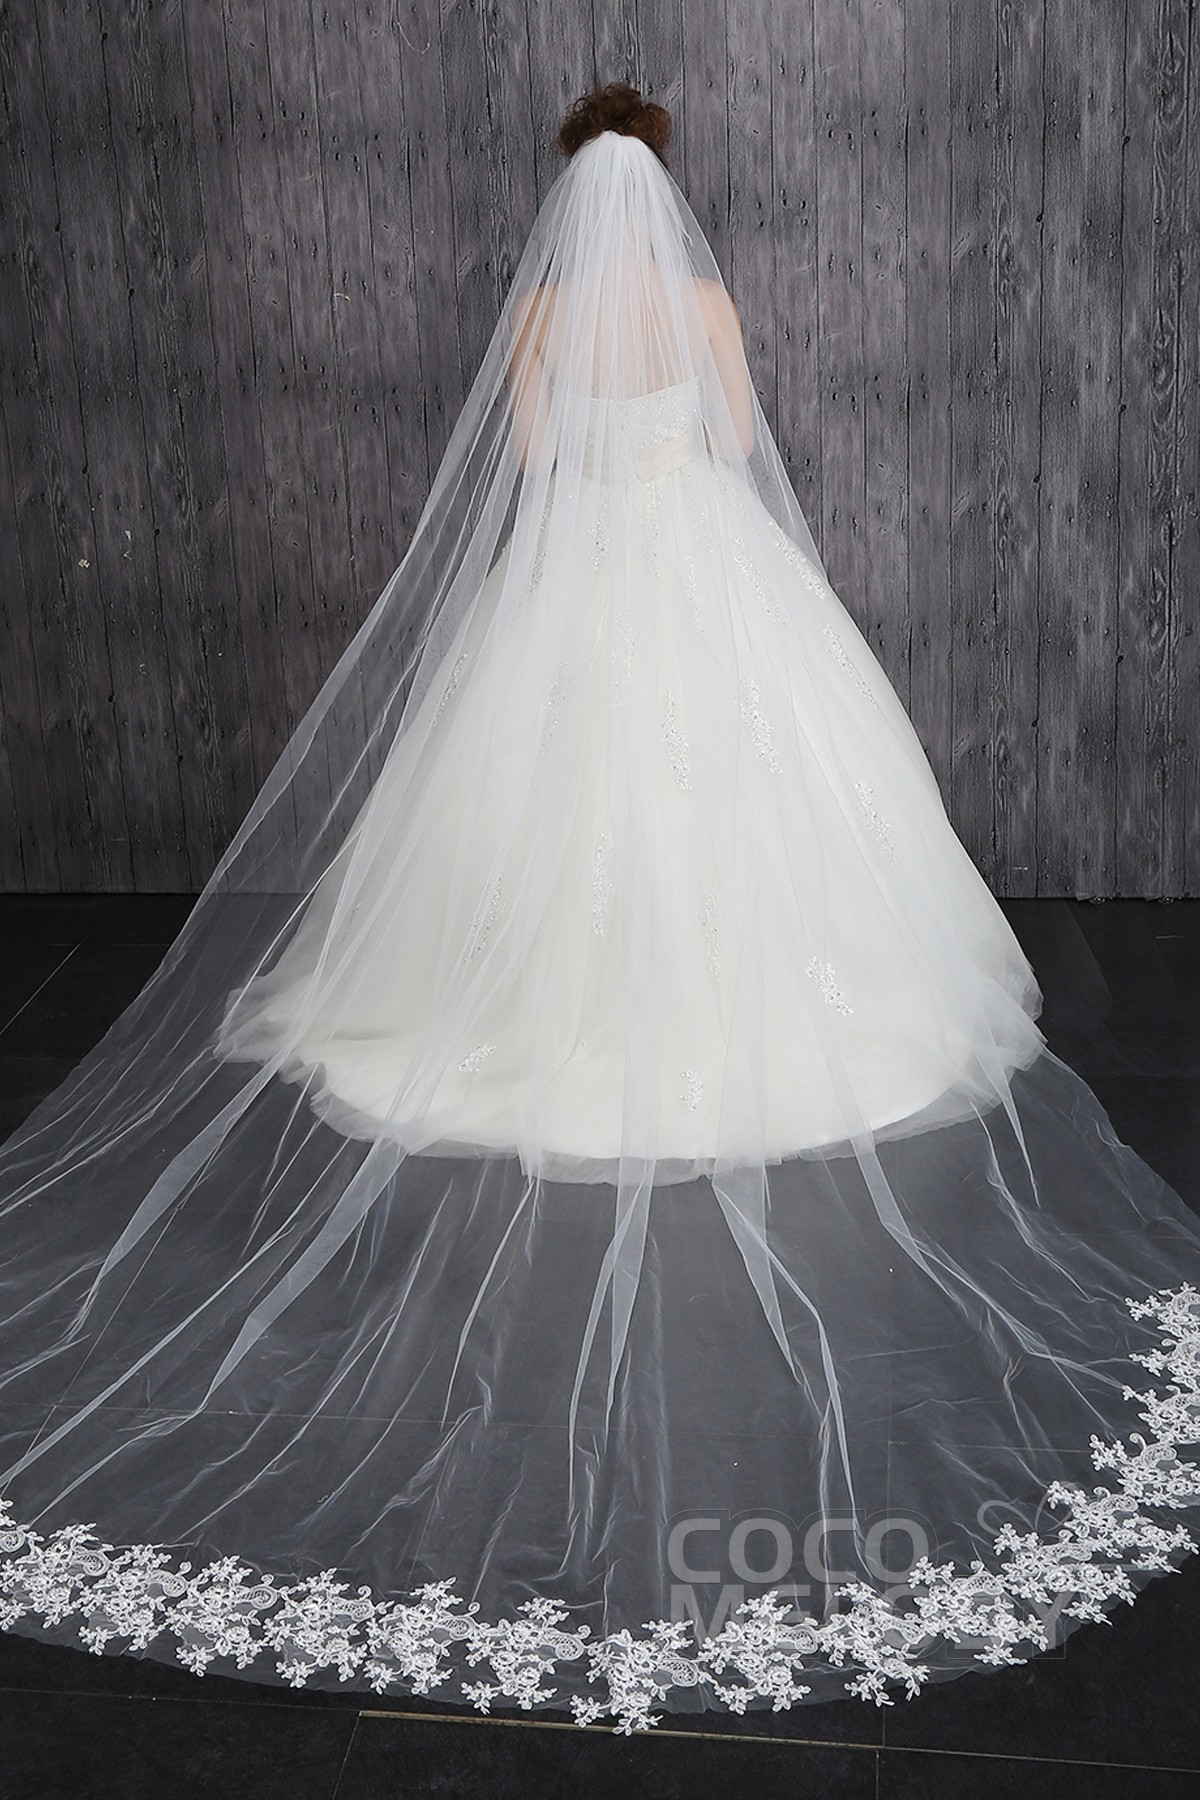 Chic One-tier Lace Edge Tulle Appliques Ivory Cathedral Veils CV001500A